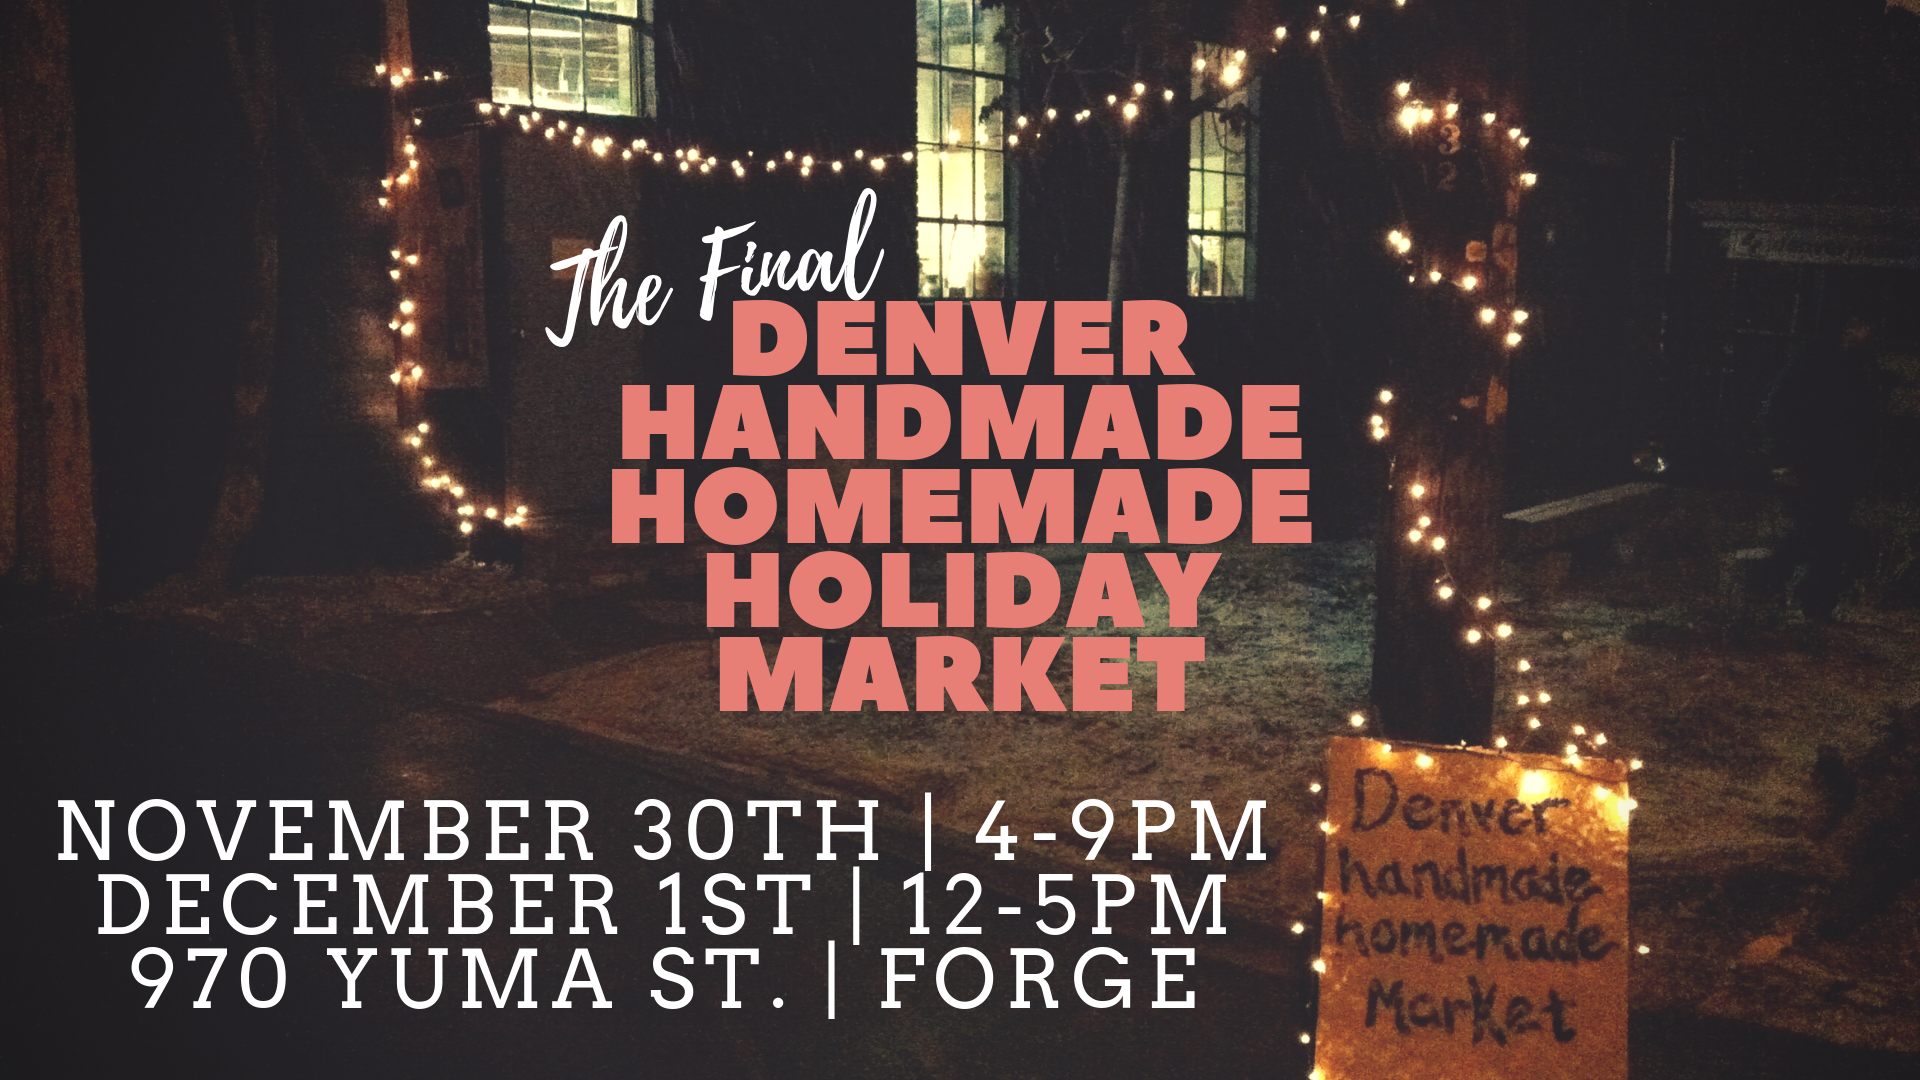 Denver Handmade Homemade Holiday Market.png